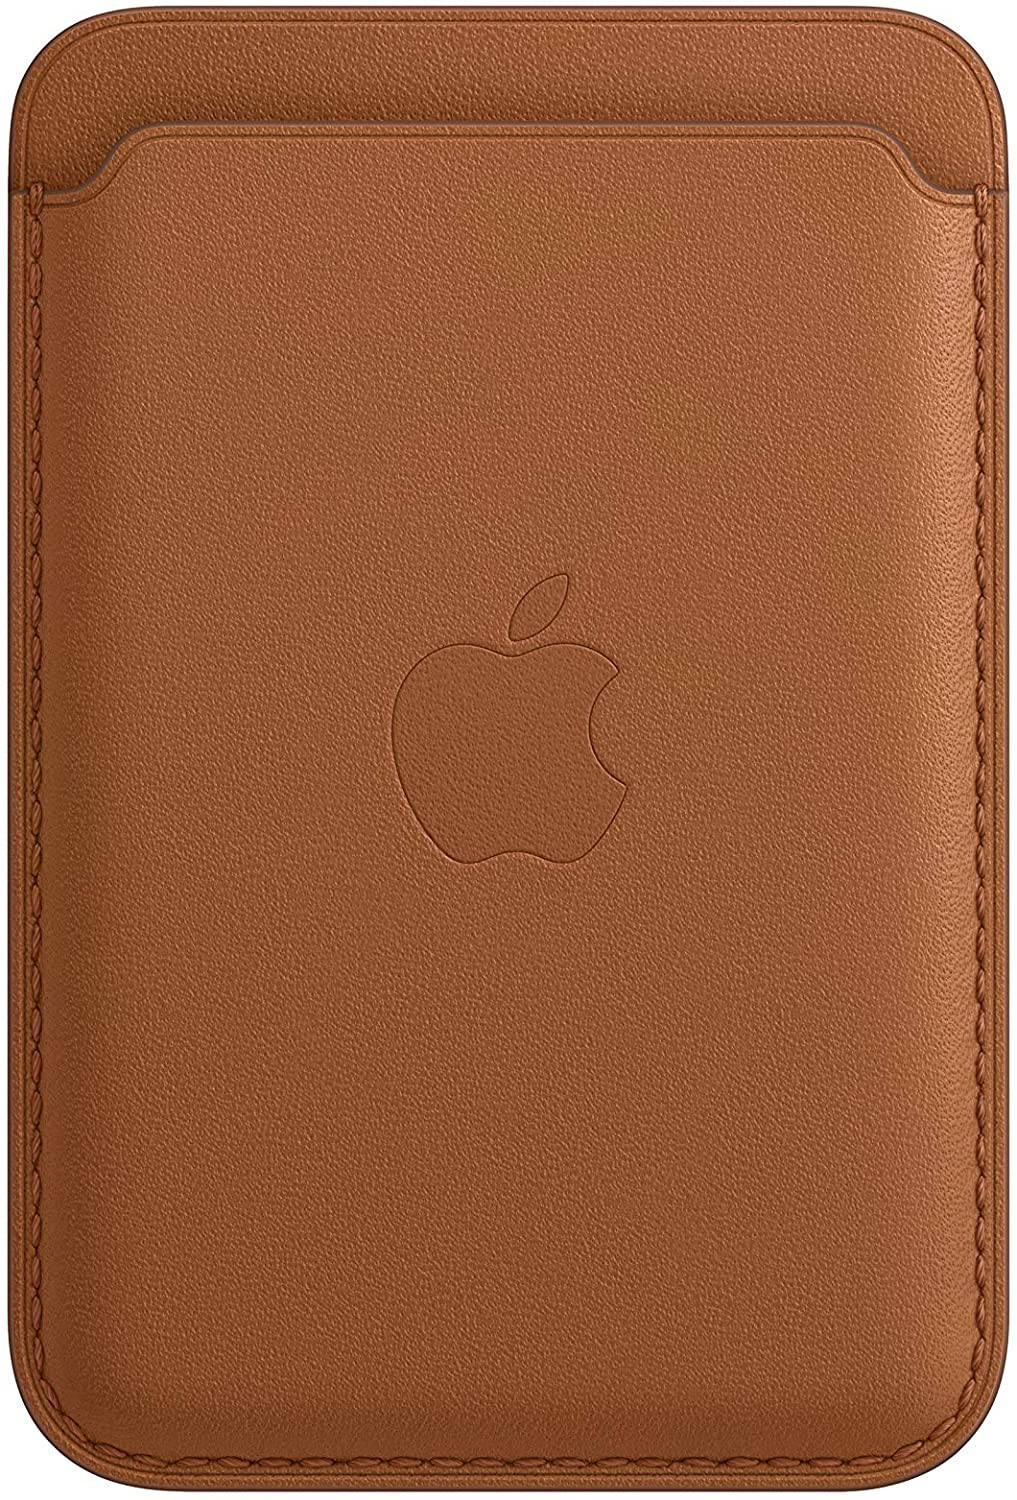 Apple Leather Wallet with MagSafe